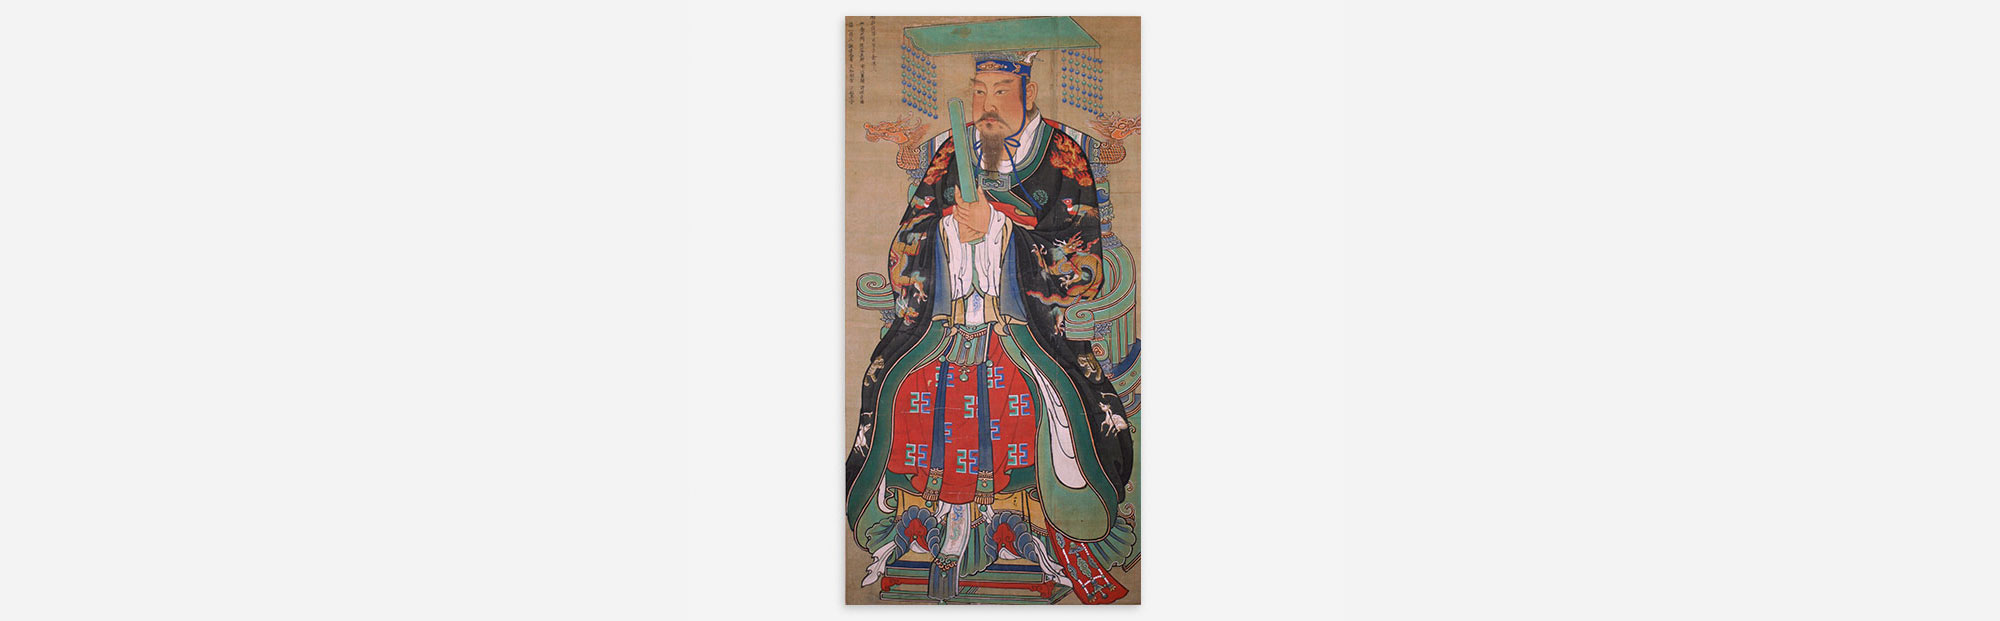 Asian, Ancient & Ethnographic Works of Art Auction